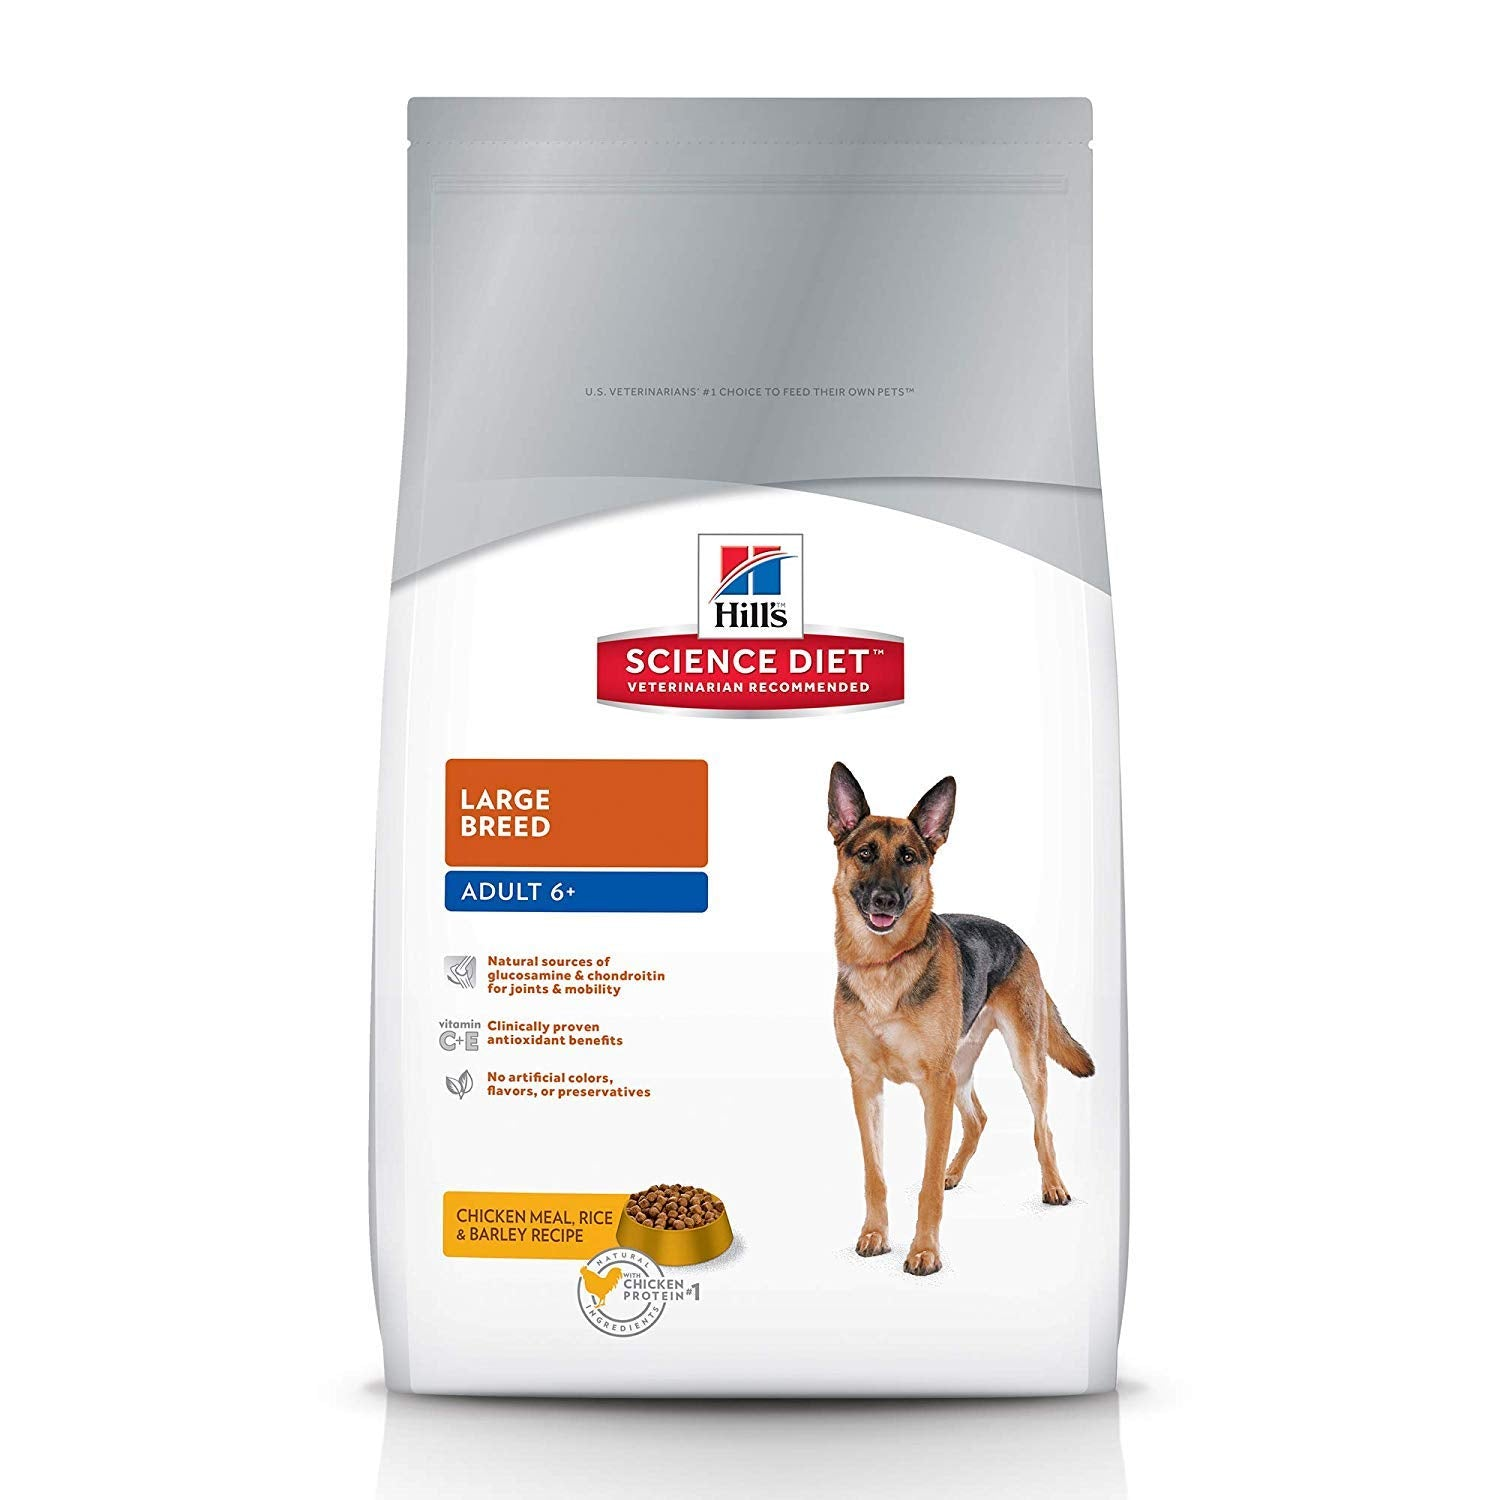 Hill's Science Diet Adult 6+ Large Breed, Chicken Meal Rice & Barley Recipe Dog Food 12 Kg - pet-club-india